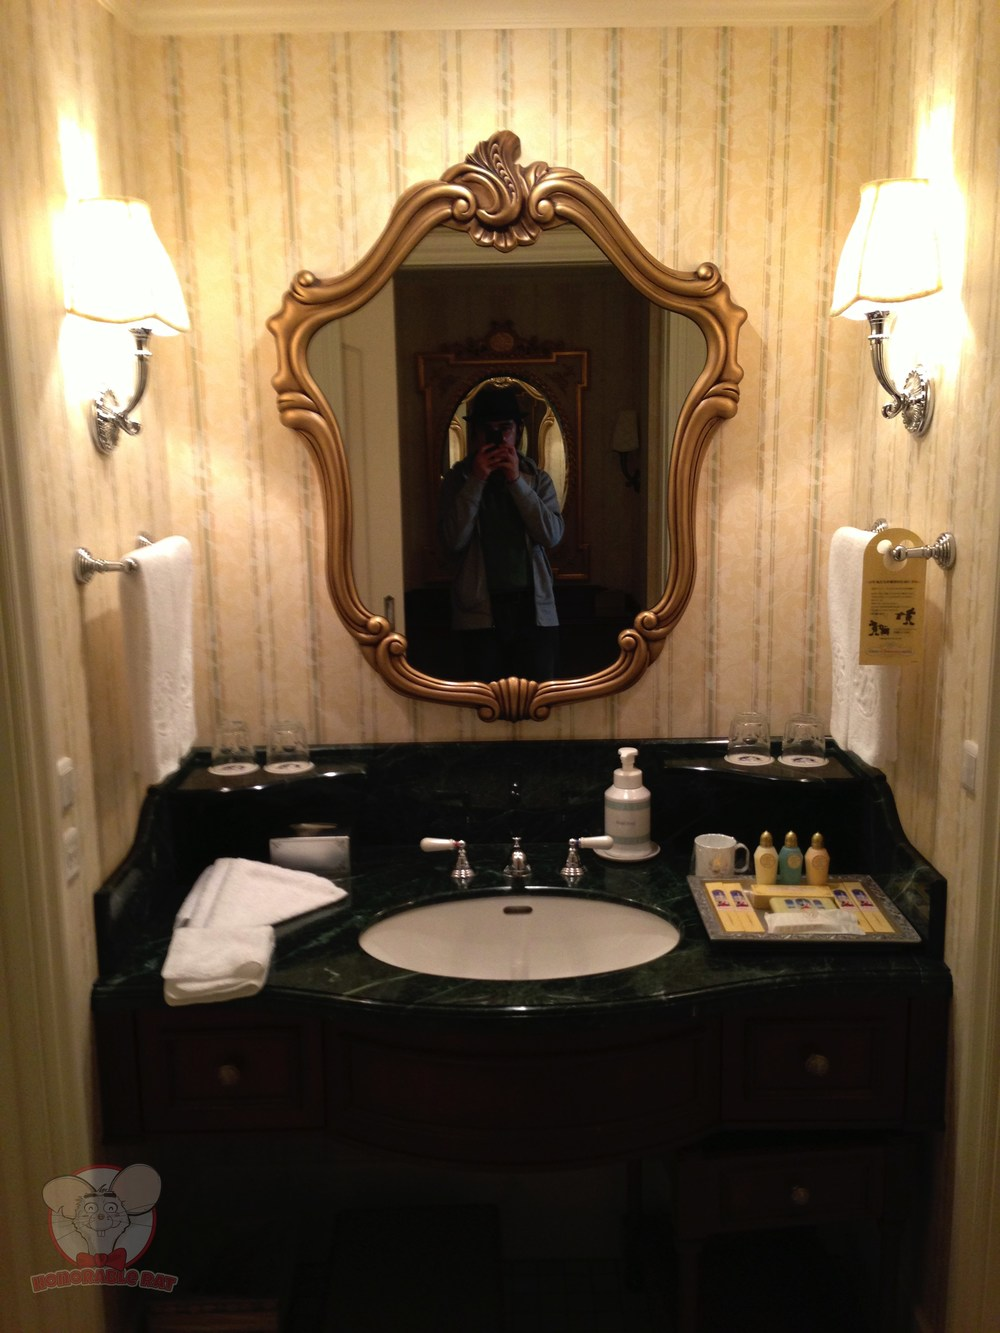 Sink area of the washroom. To the right of this picture is the bathroom and to the left is the toilet